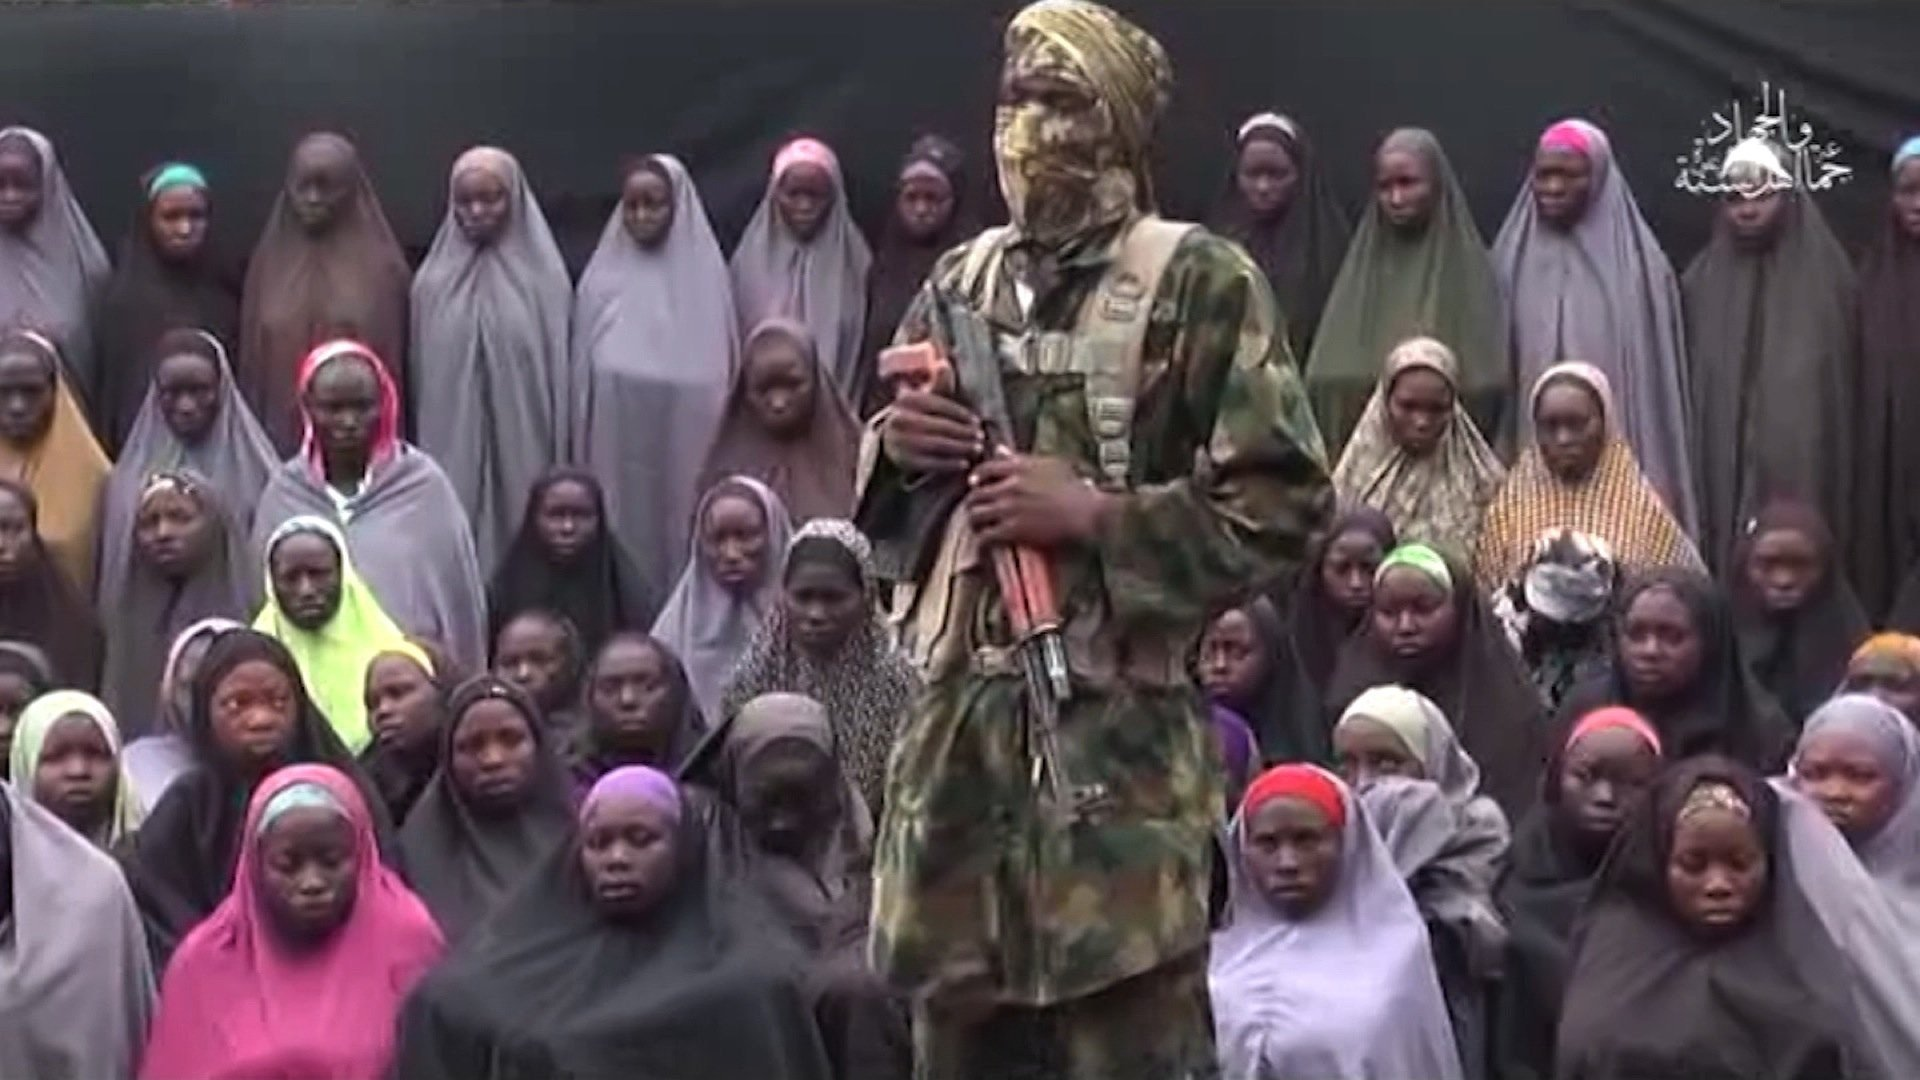 More than 90 Nigerian schoolgirls missing after Boko Haram attack